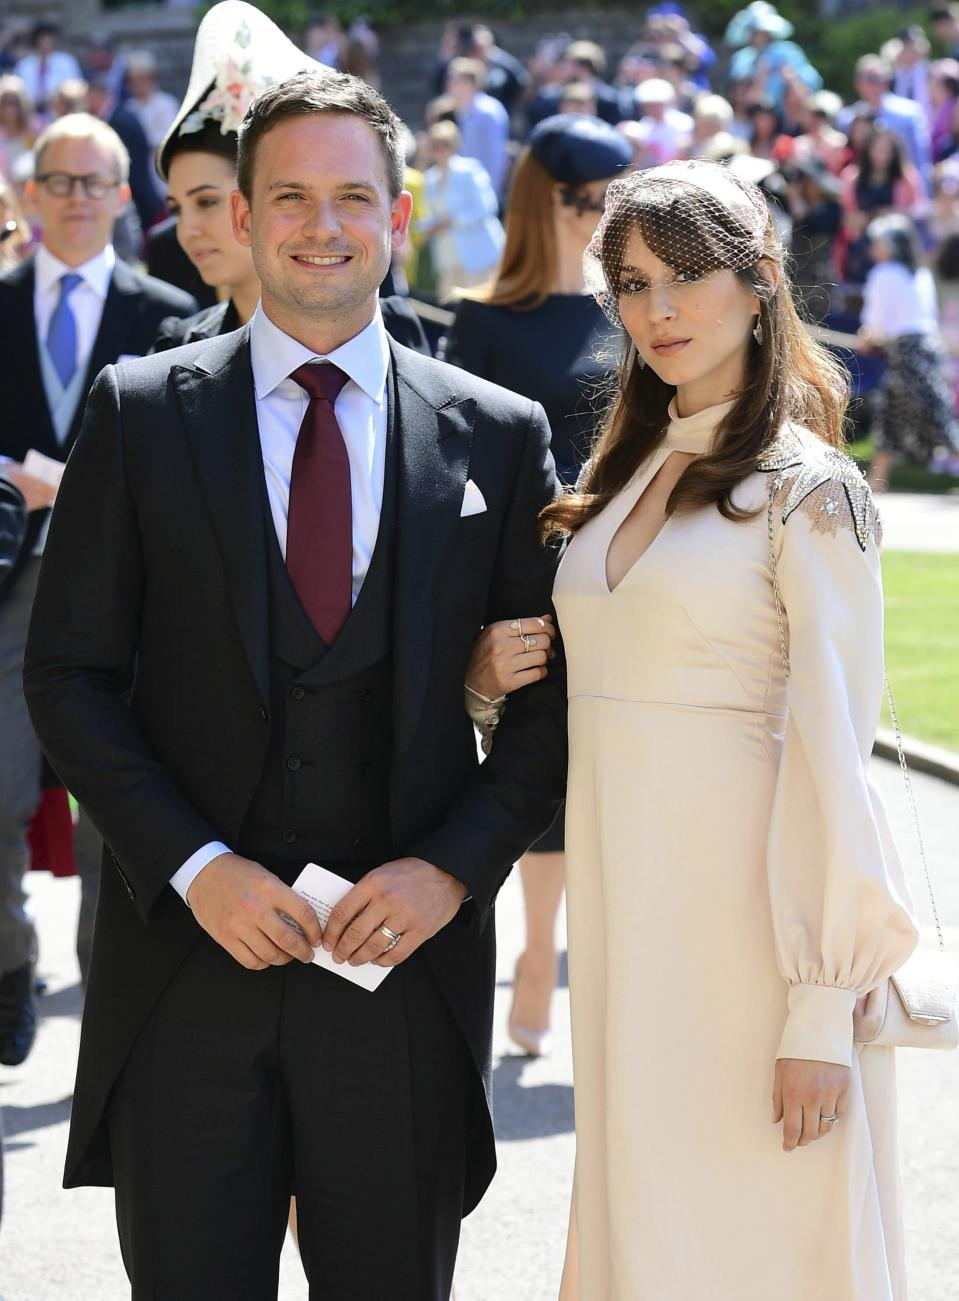 Patrick J. Adams and wife Troian Bellisario arrive a for the wedding ceremony of Prince Harry.